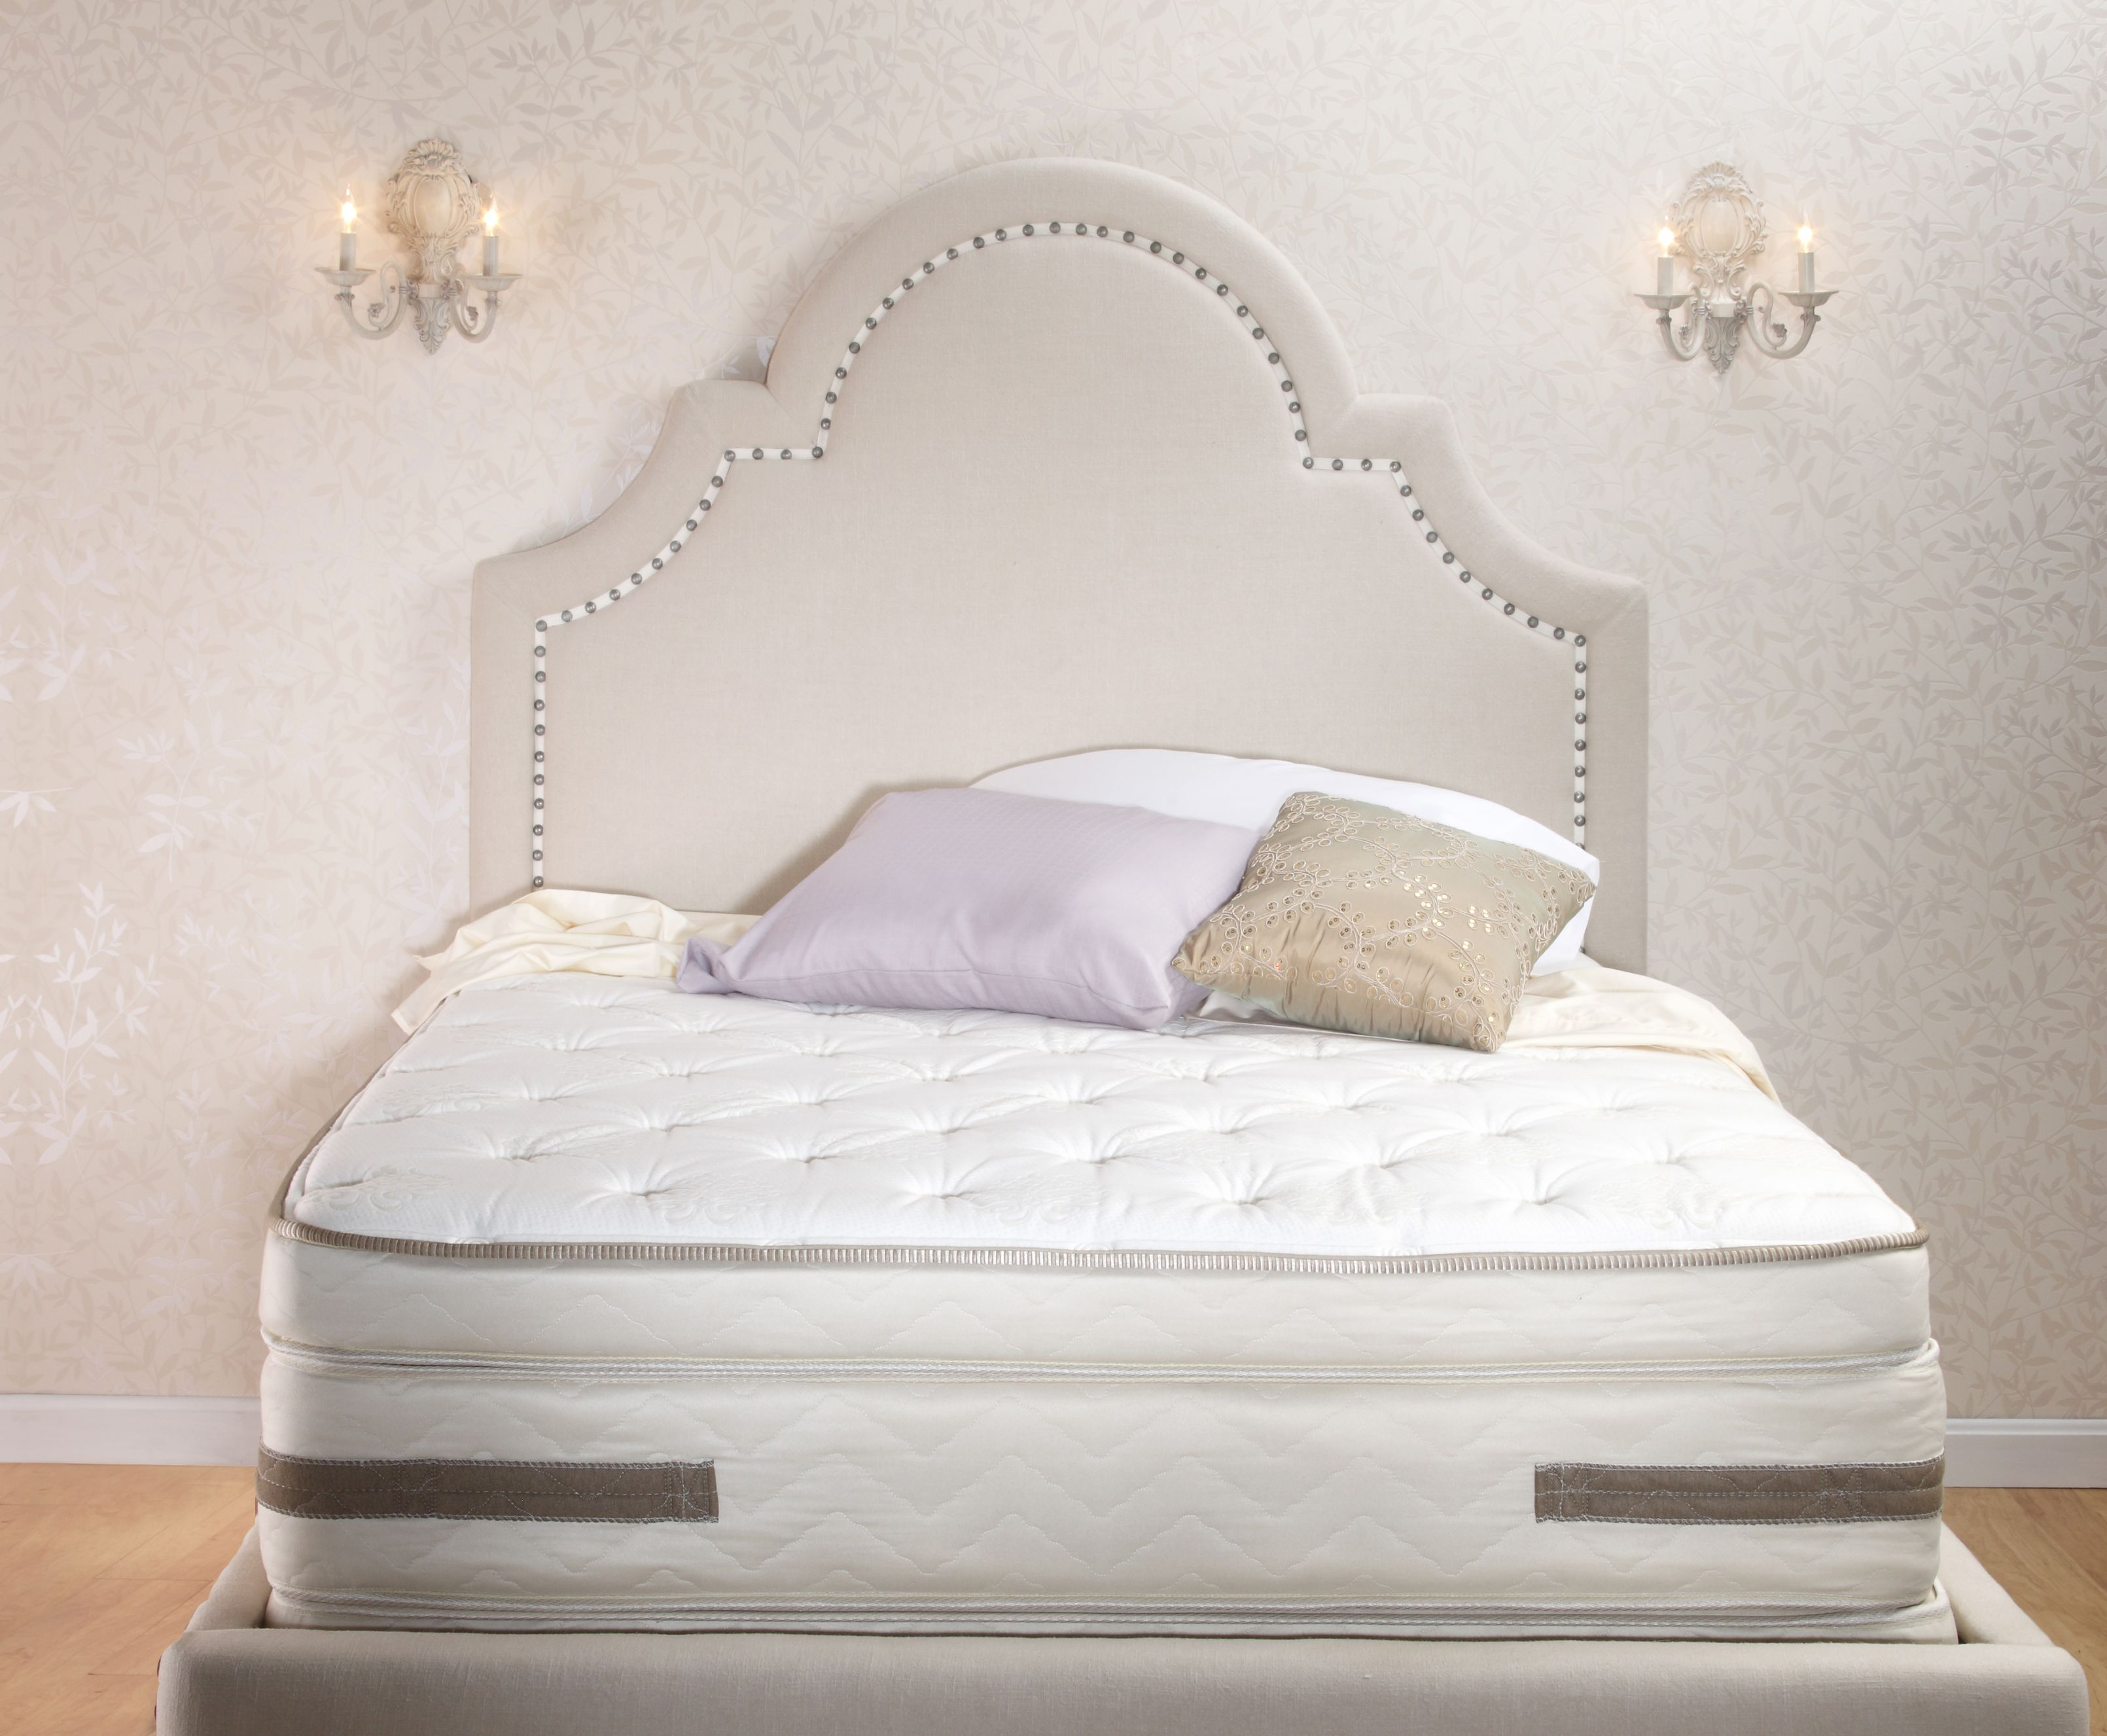 Perfect Choice Mattress Collection By Monarch Rest Rainbow Bedding Replacable Pillowtop Style May Well